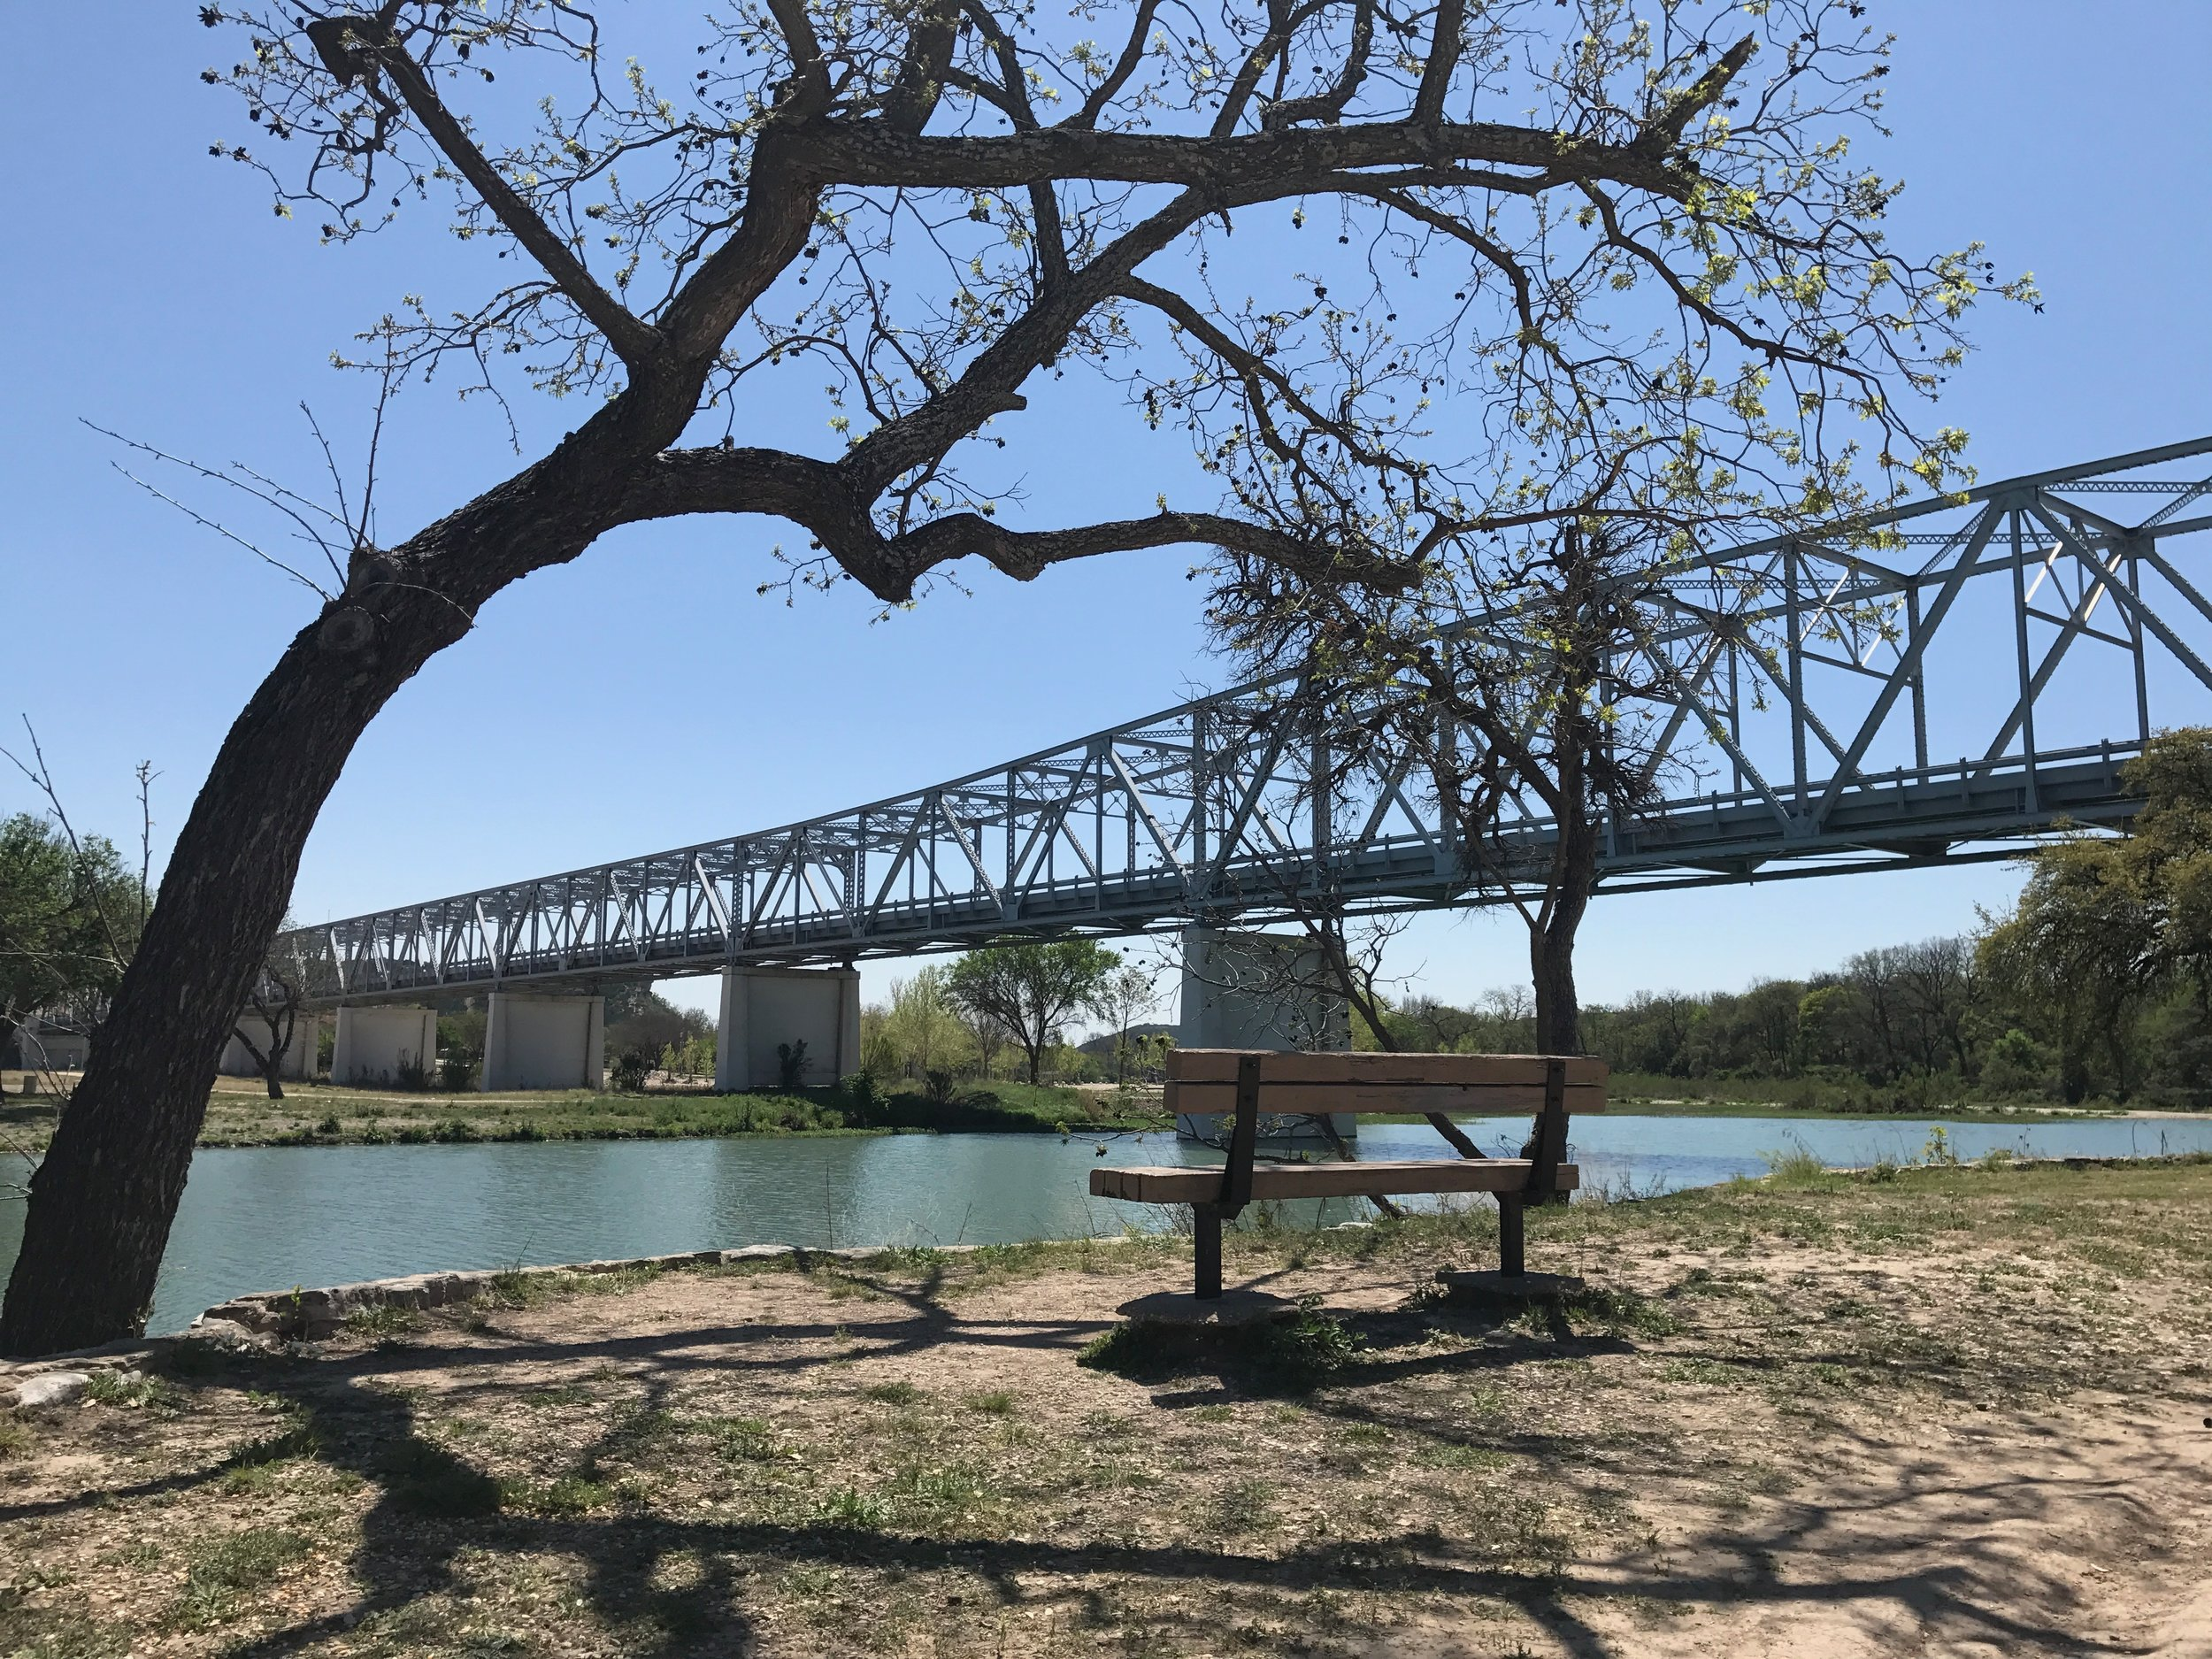 South Llano River in Junction